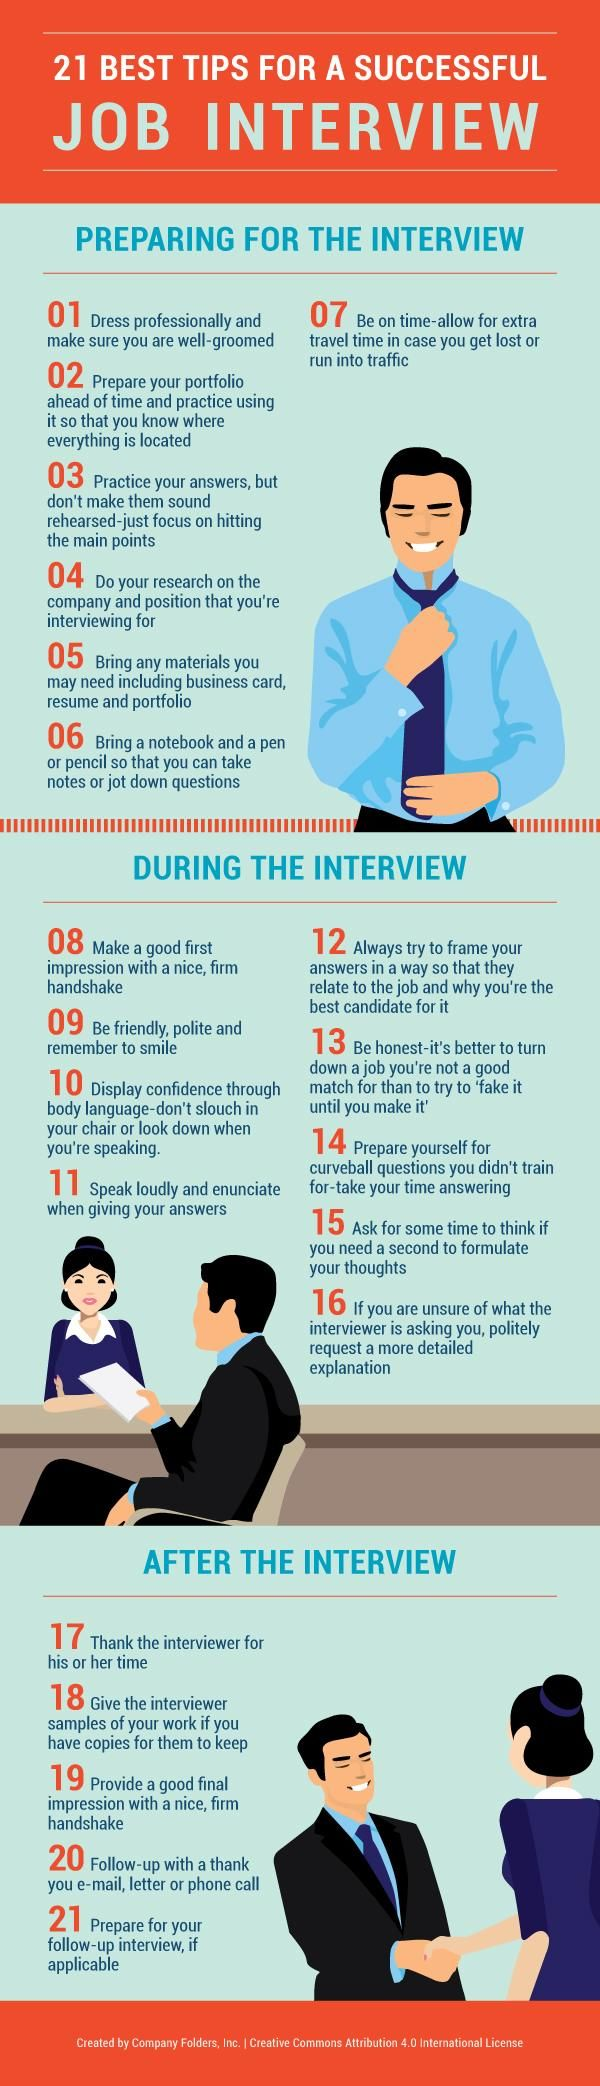 Interview Tips by Skip Prichard